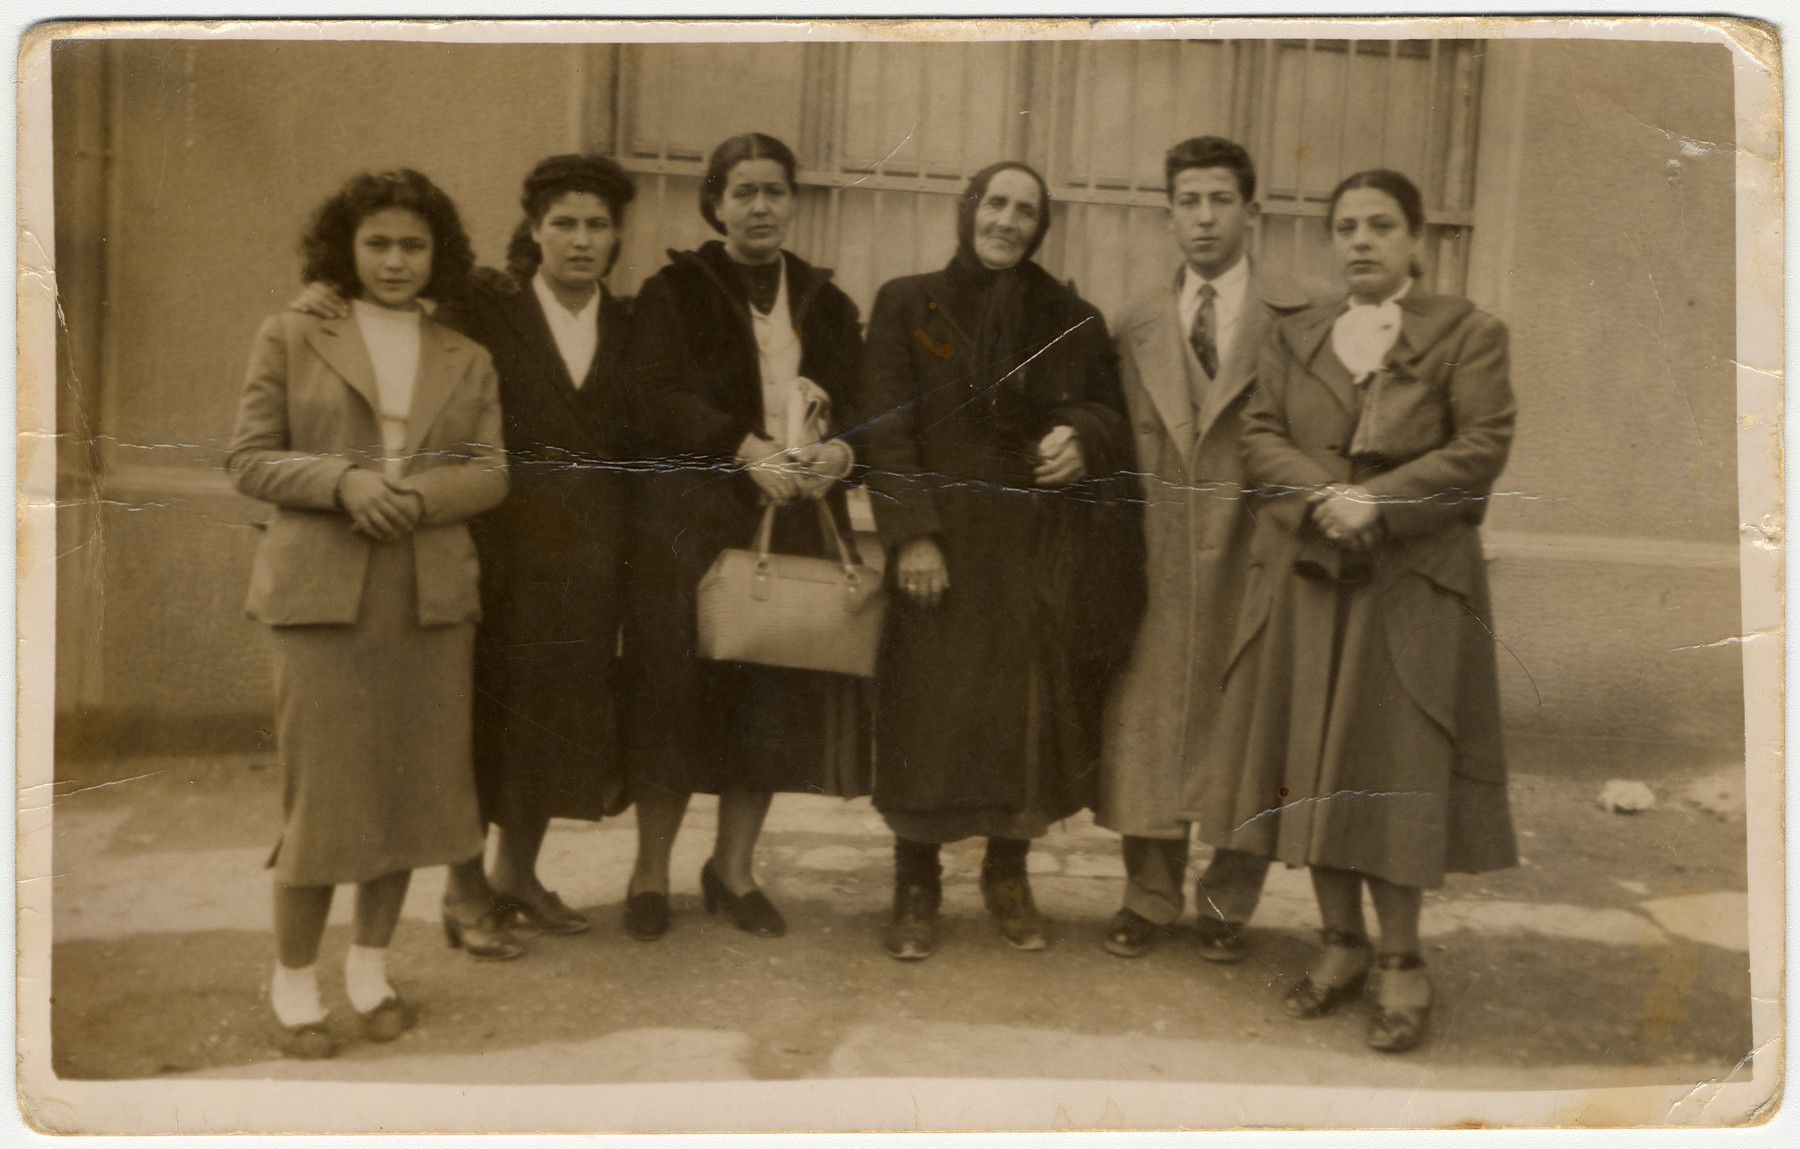 The Gabrielides family says good-bye to its relatives prior to leaving for the United States.  Pictured from left to right are Effie Gabrielides, Rachel Barouch, Esther Gabrielides, Simha Gabrielides (grandmother of the donor), Zino Gabrielides and Nina Alouf.